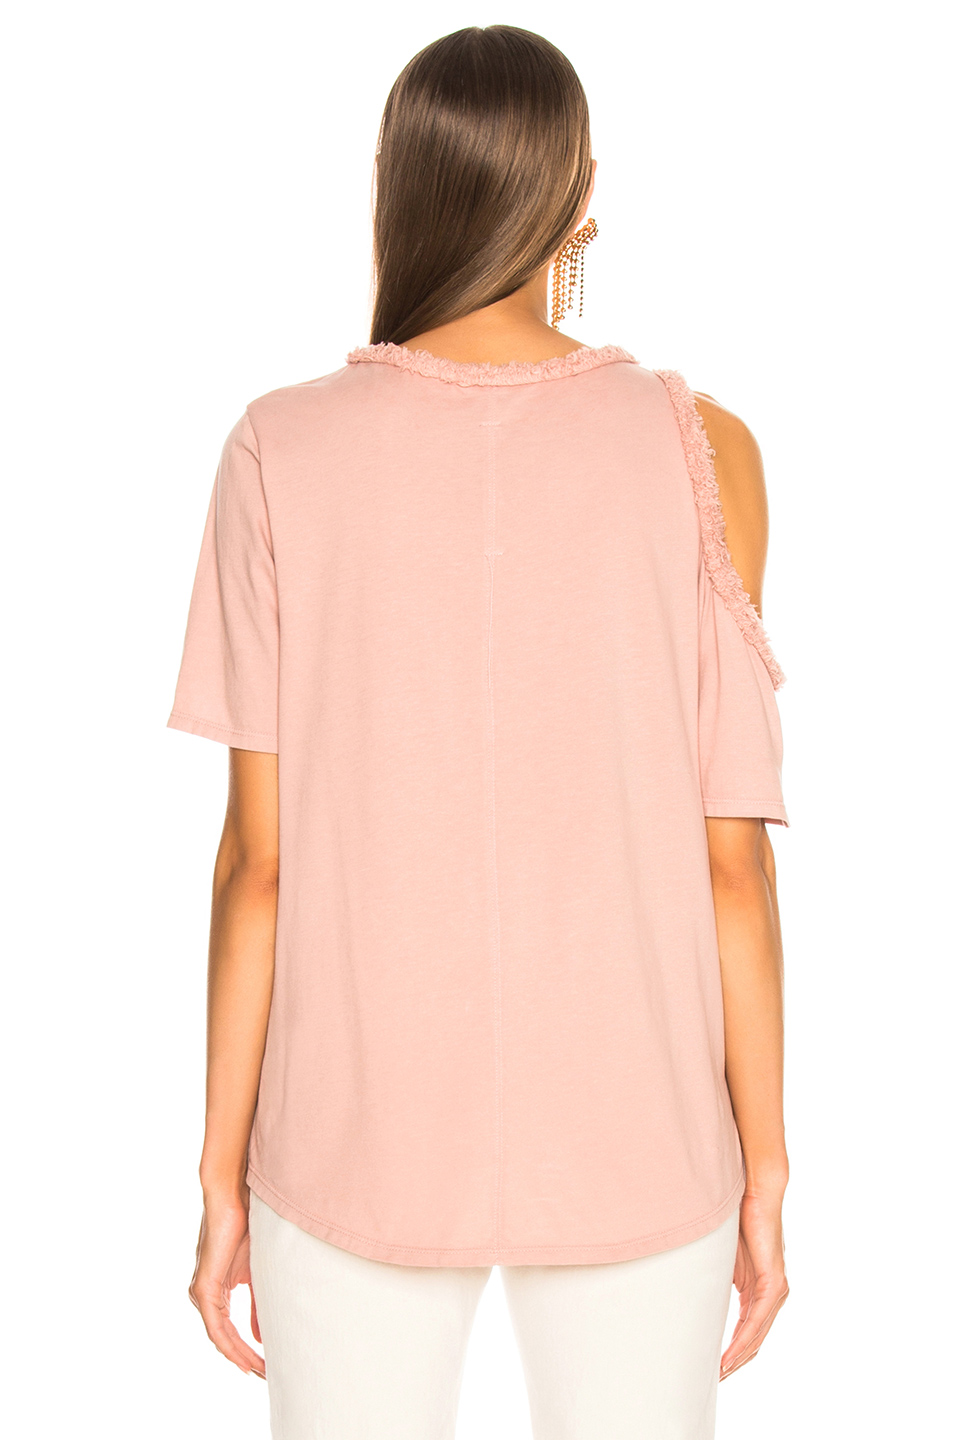 Raquel Allegra Cut Out Men's Tee